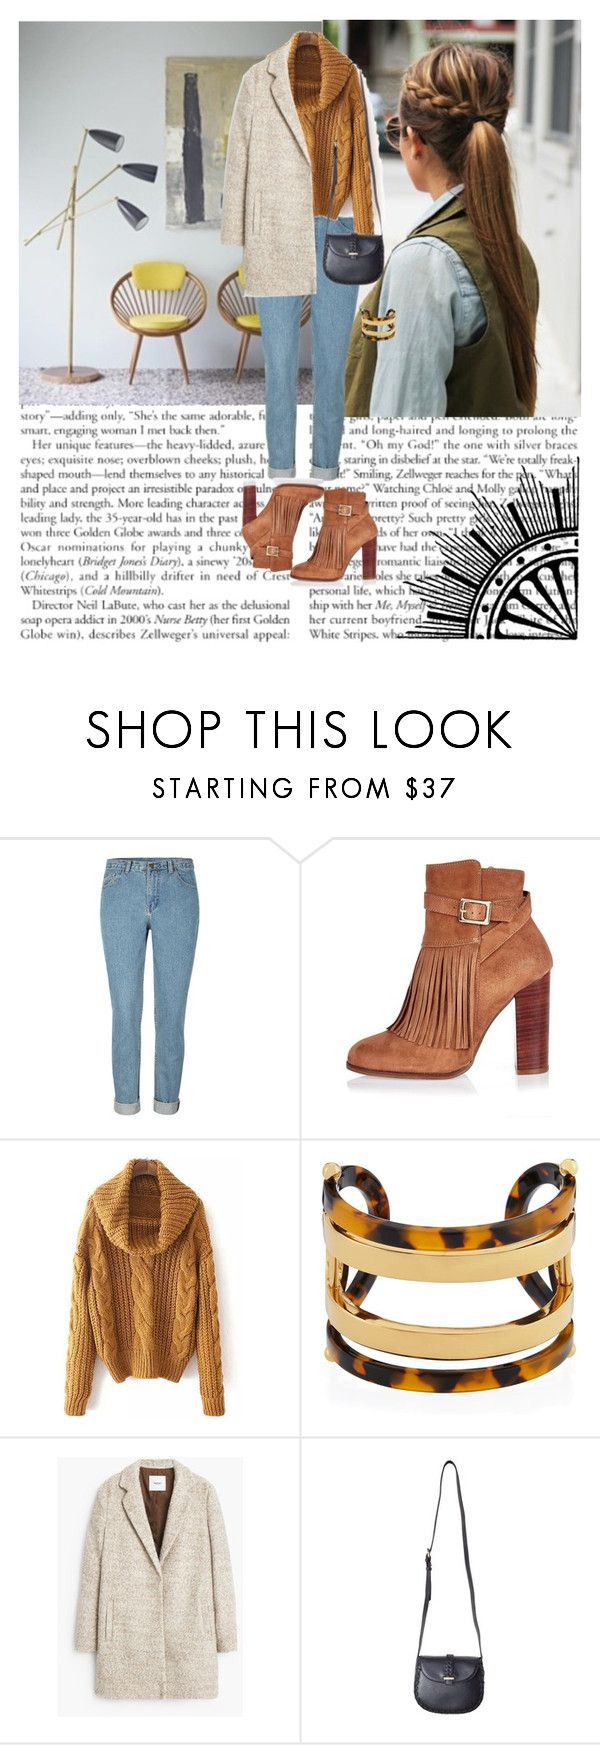 """Untitled #14"" by tajci-95 ❤ liked on Polyvore featuring moda, River Island, Tory Burch y MANGO"